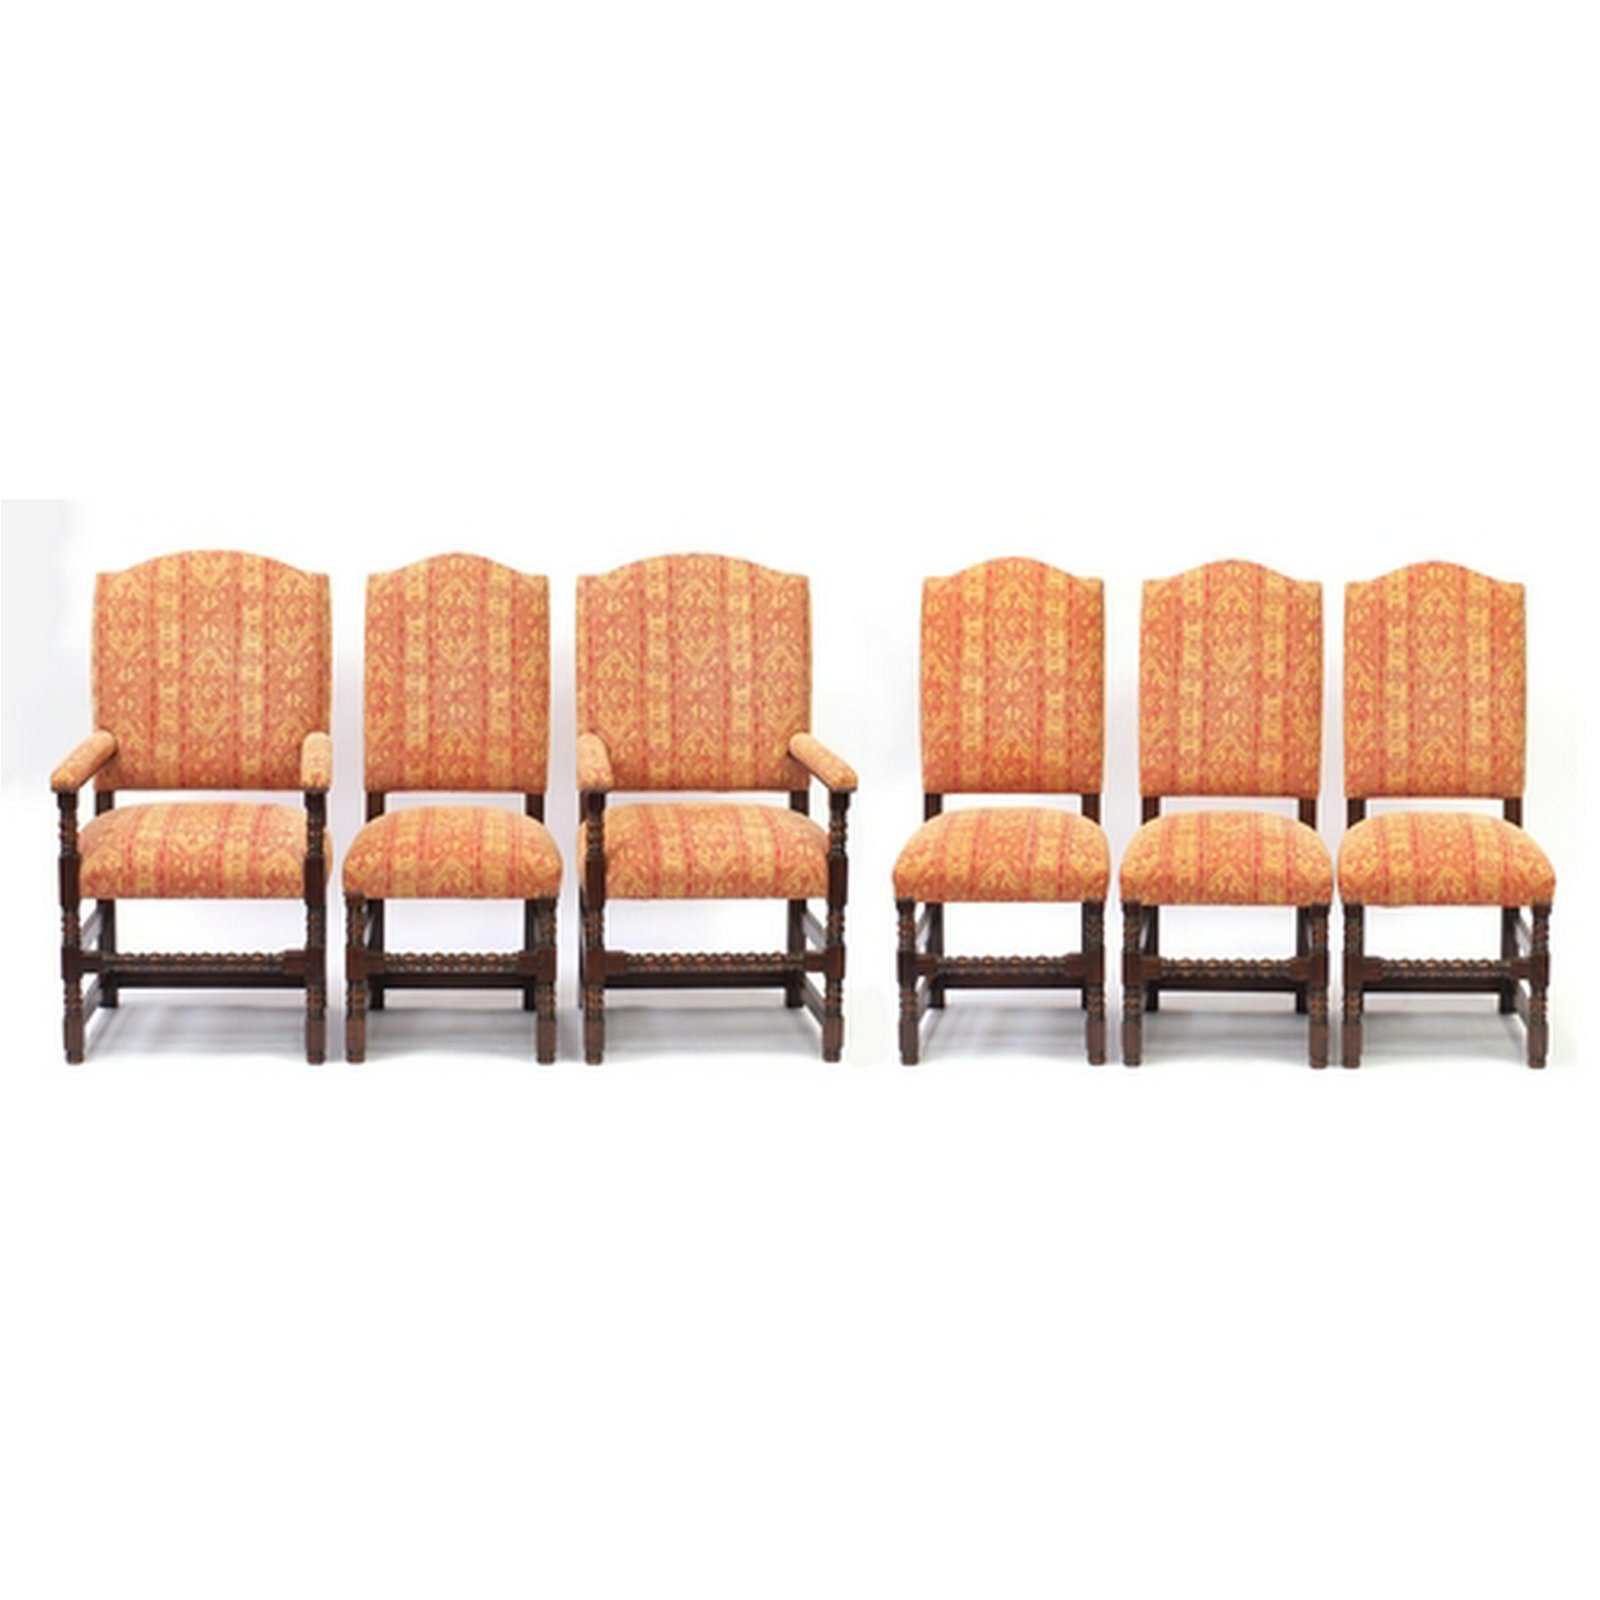 Set of six oak framed dining chairs with bobbin turned